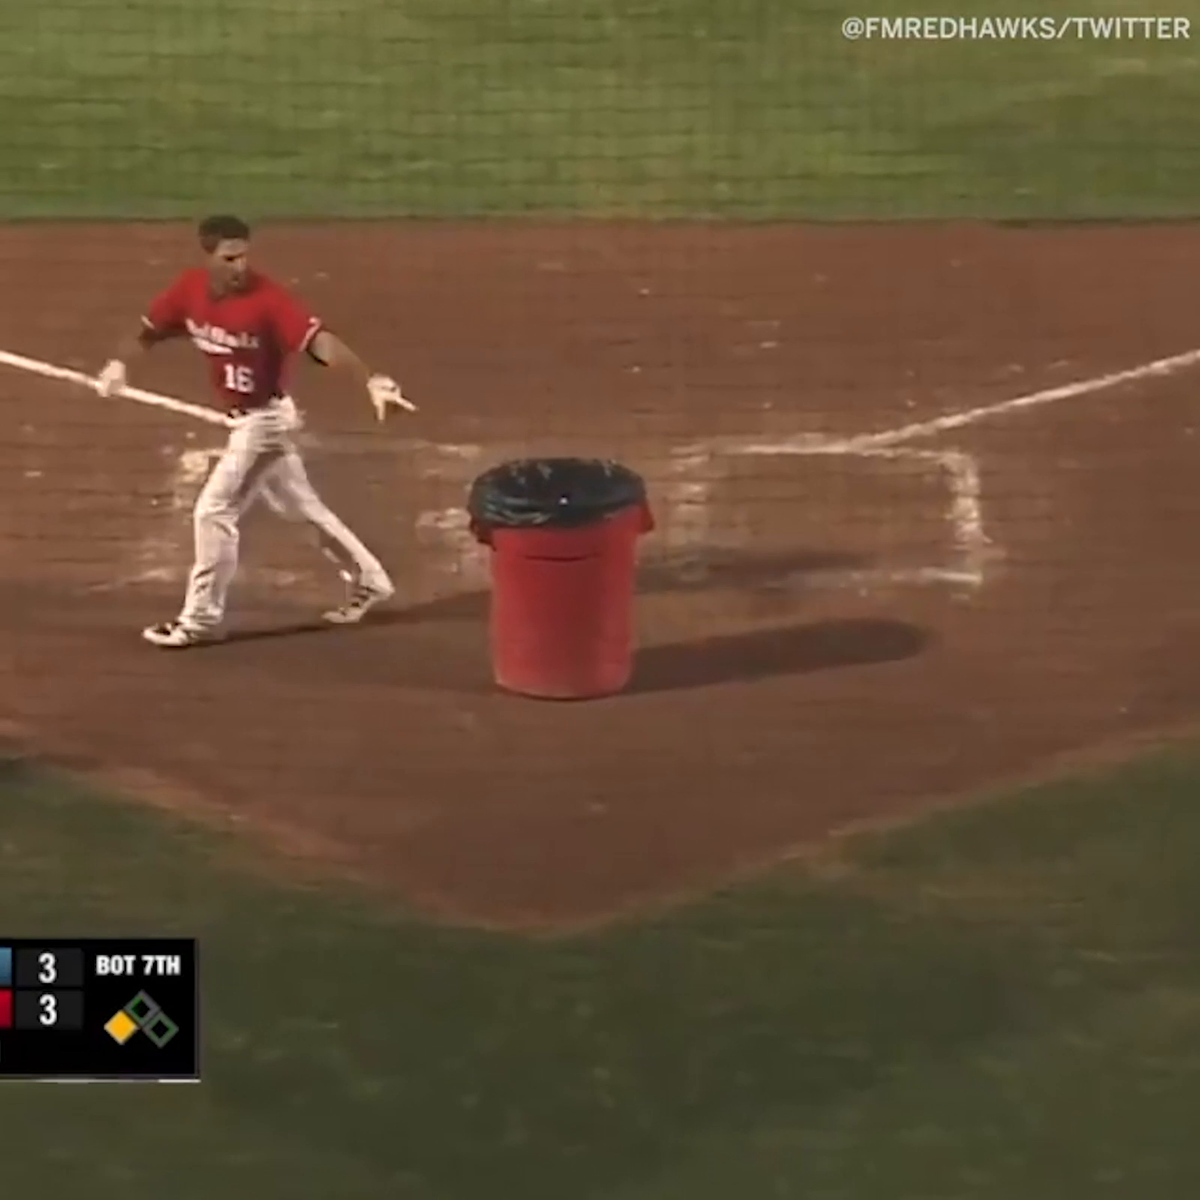 Replying to @espn: He really put the trash can in the ump's place 🤣   (via @FMRedHawks)